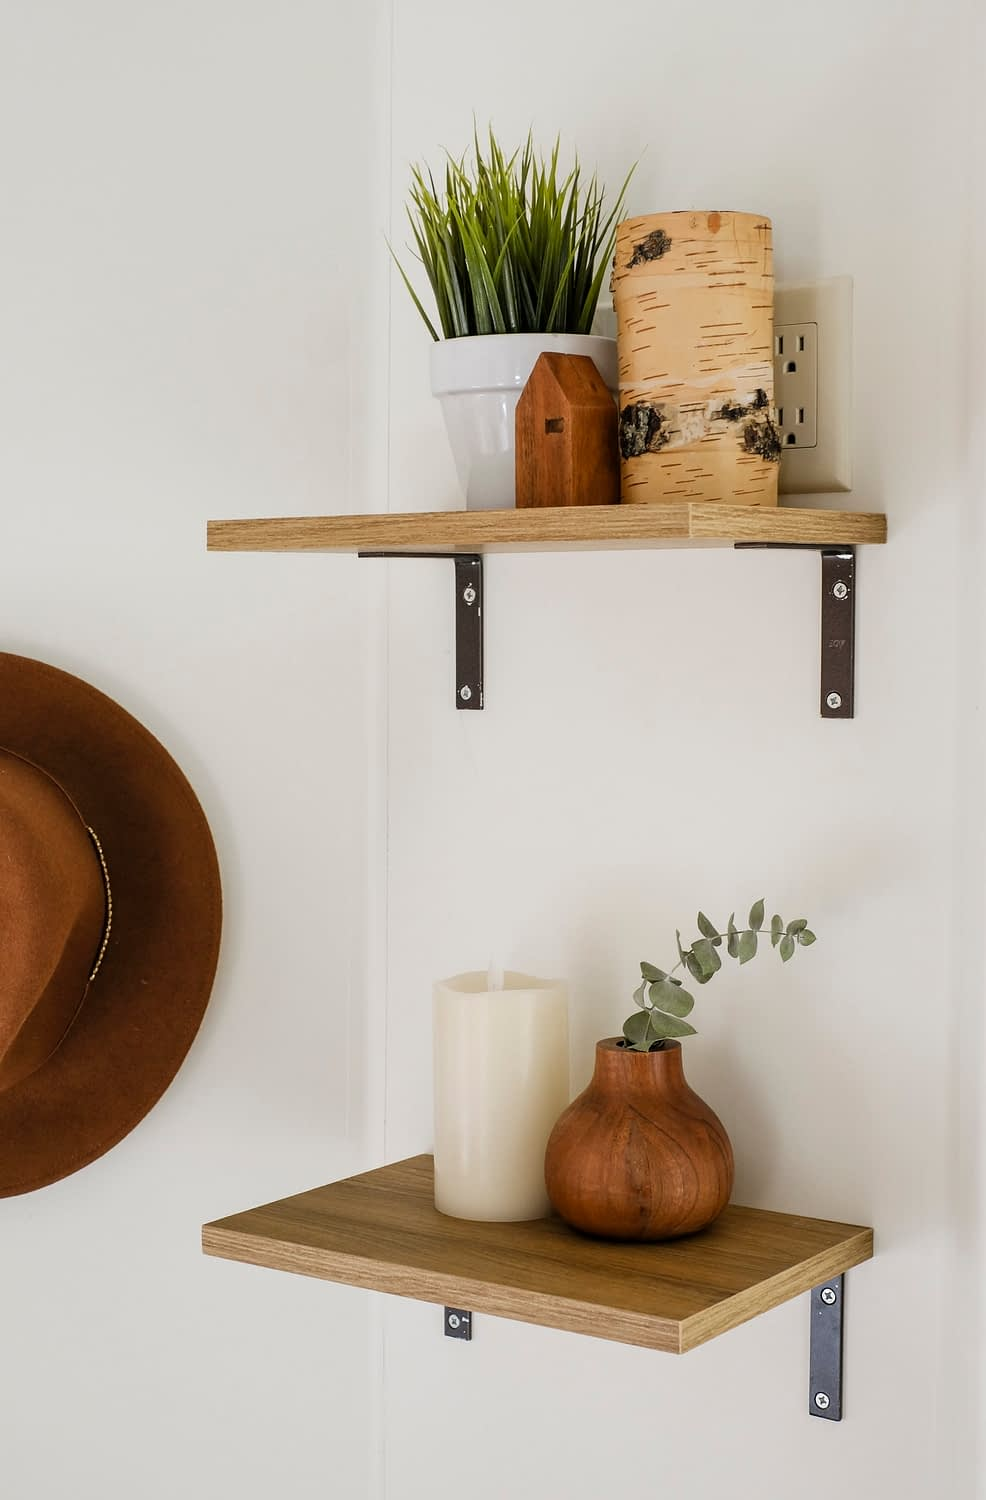 Two open shelves with candles and greenery on top